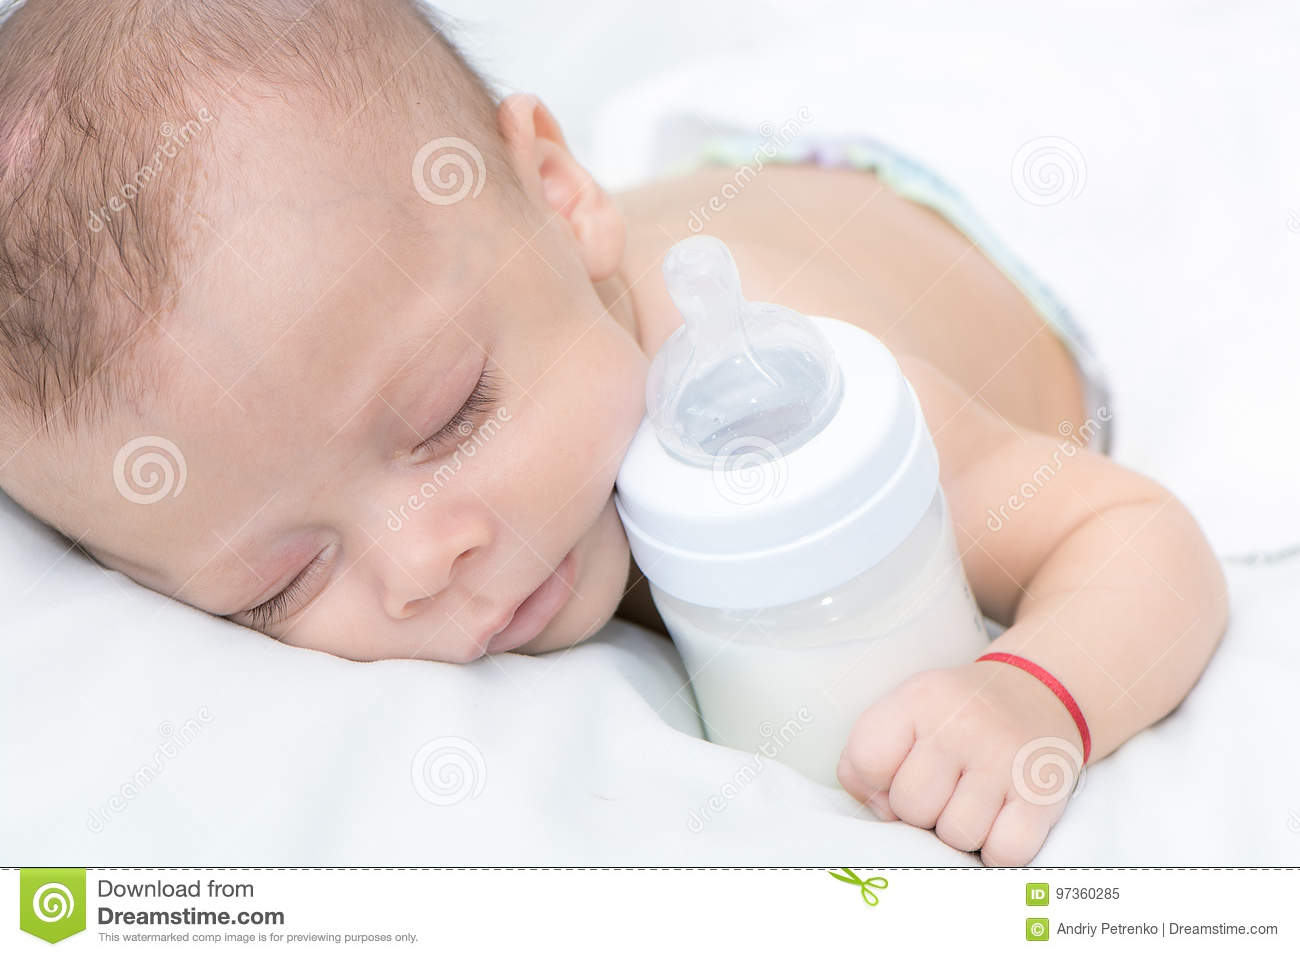 Baby curled up sleeping on a blanket with feeding bottle